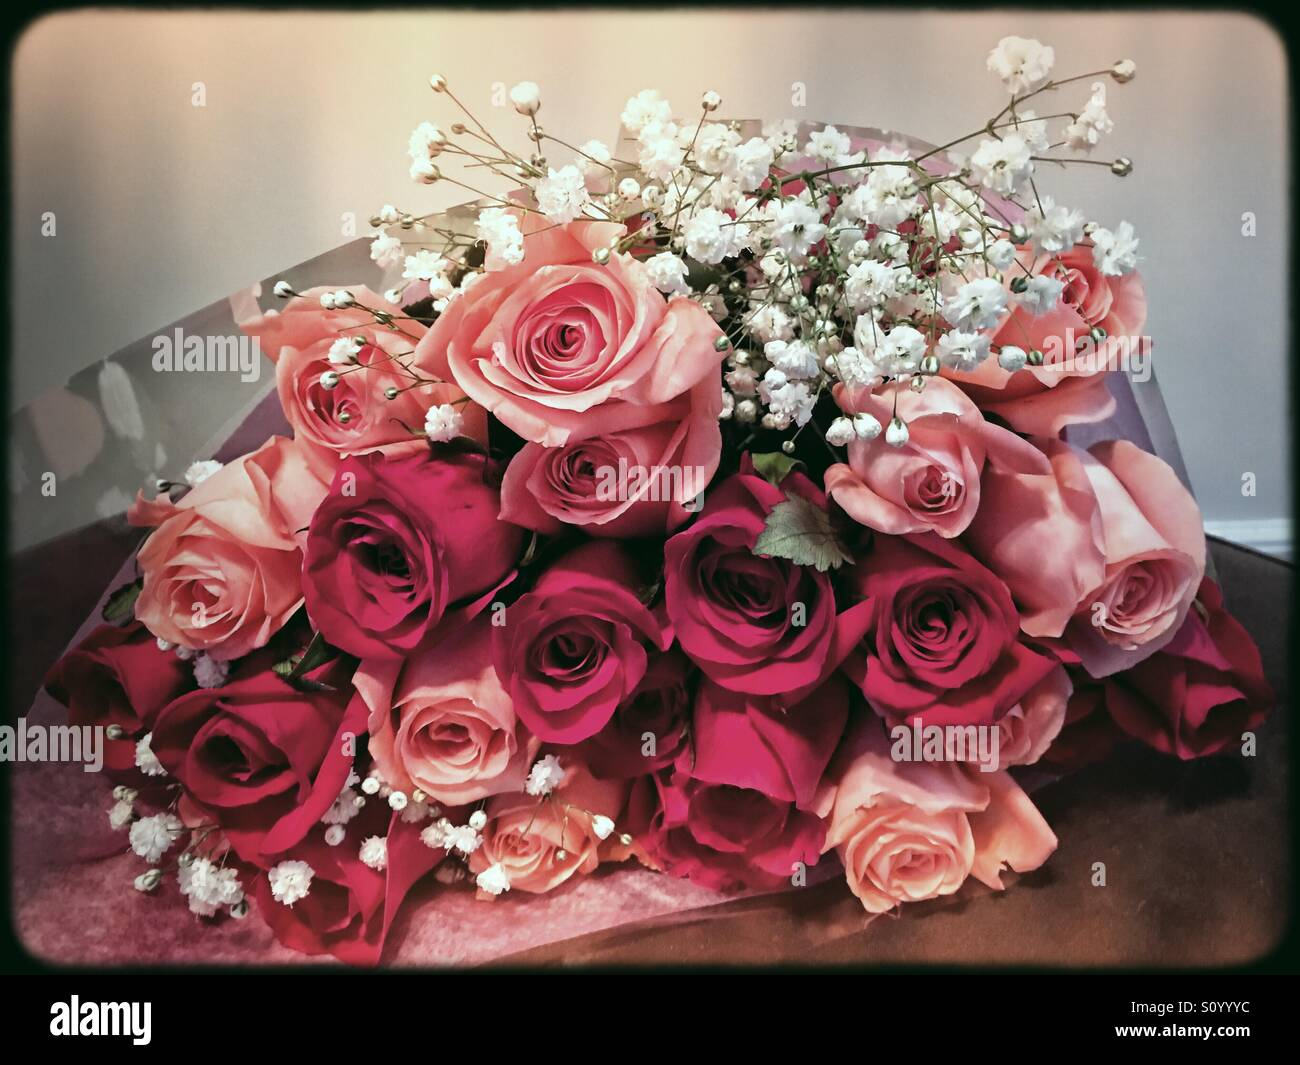 Lovely pink and red roses for Mothers Day or Valentines Day or for spring and summer happiness. - Stock Image